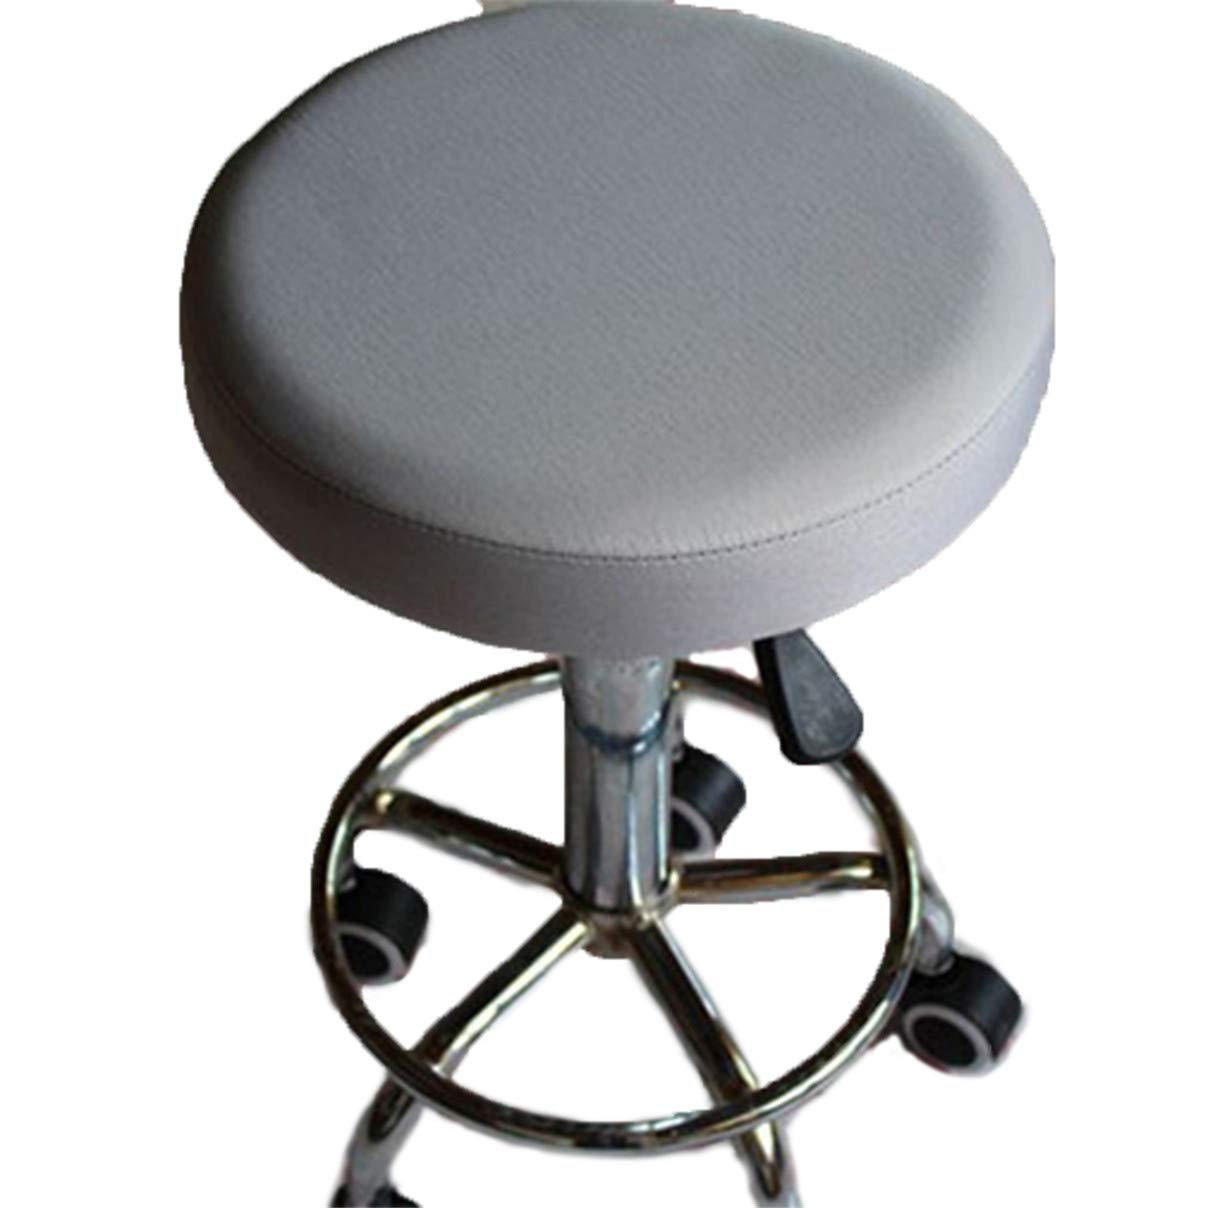 Essencedelight Stool Cover Round Thick Waterproof Barstool Seat Covers Chair Slipcover for Office Commercial Grade